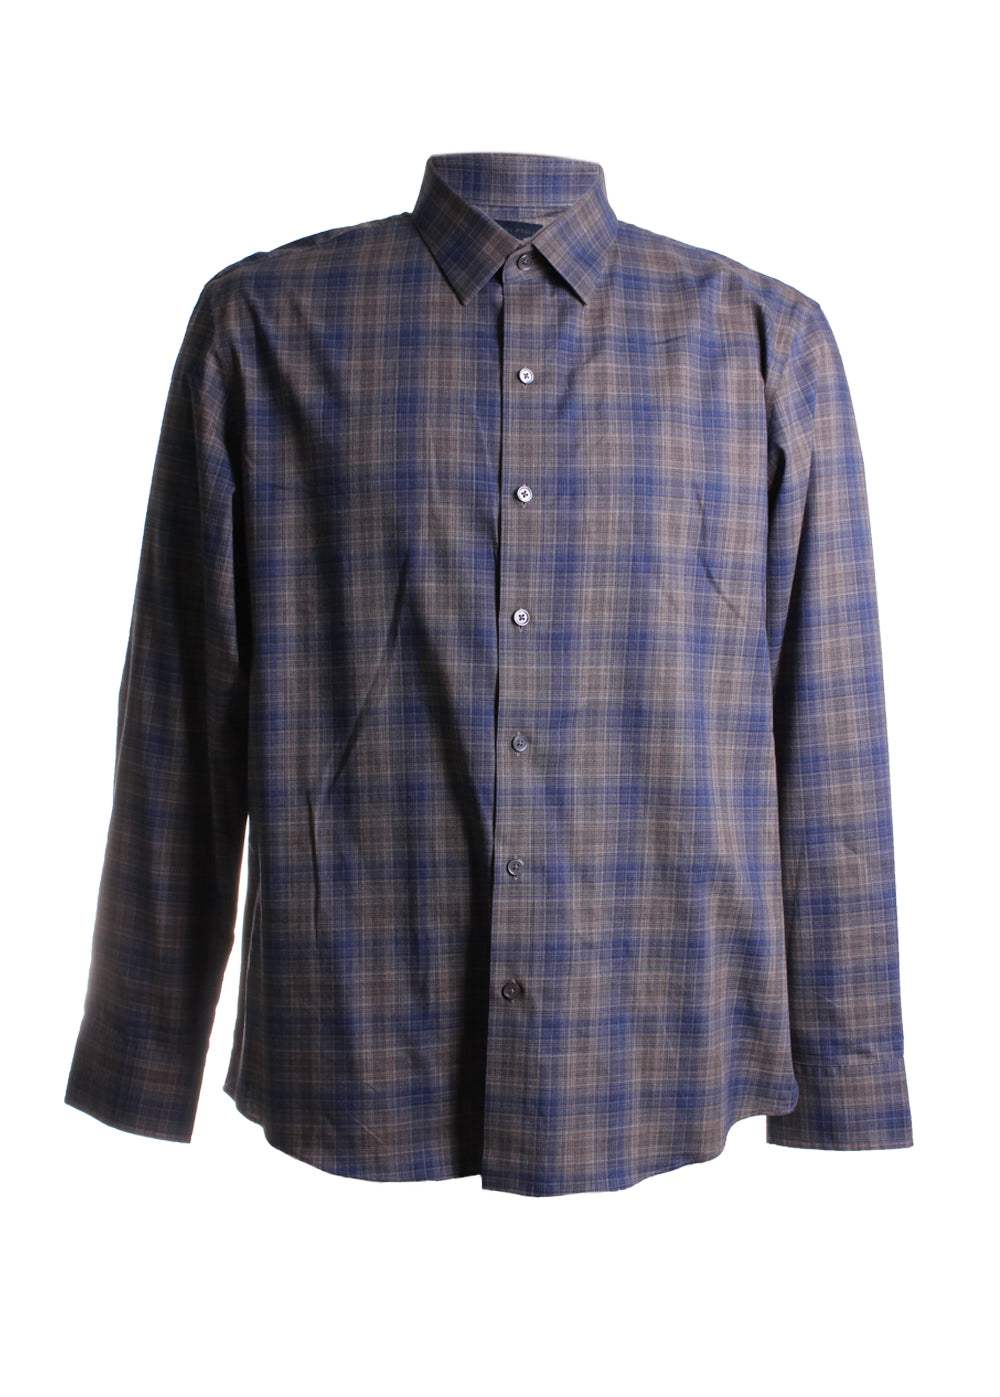 Compton Plaid Shirt